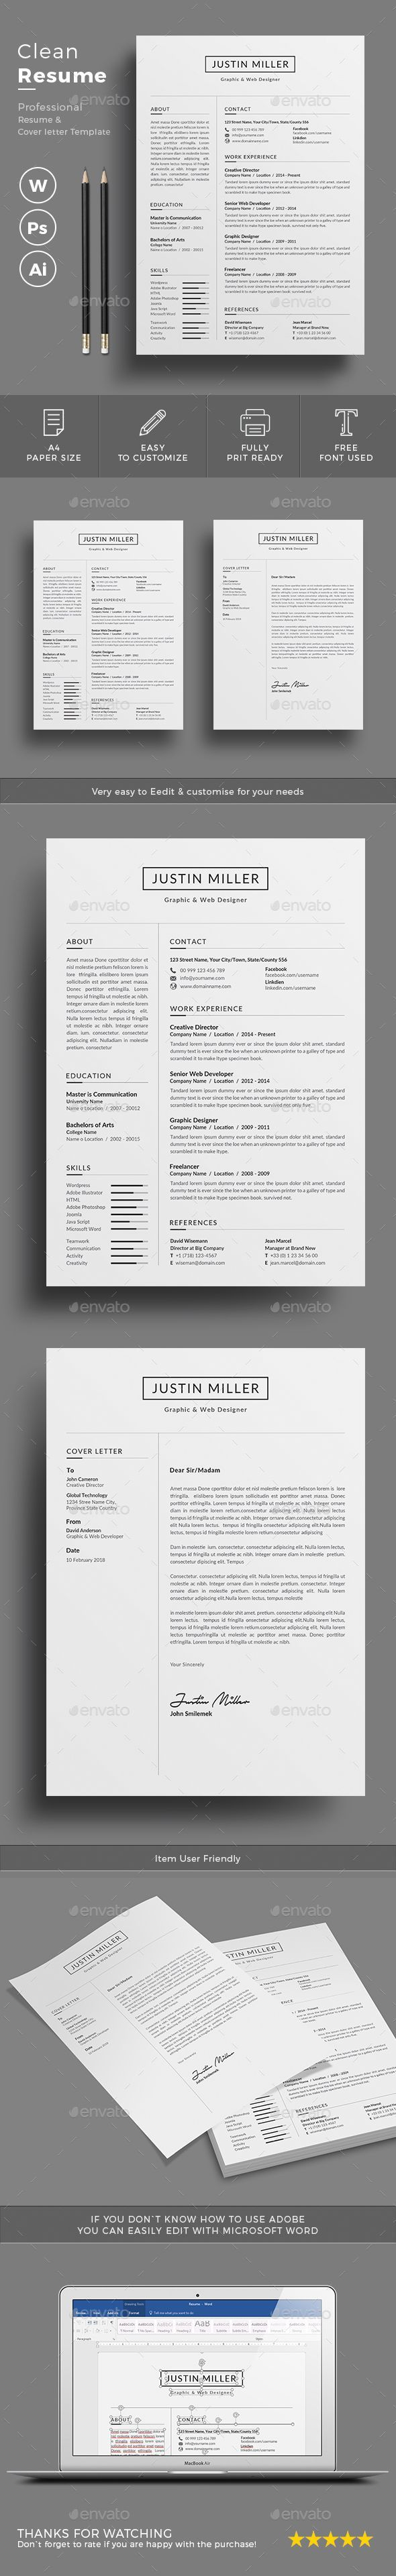 resume Pages Resume Templates best 25 resume templates ideas on pinterest cv template layout resumes stationery download here httpsgraphicriver net